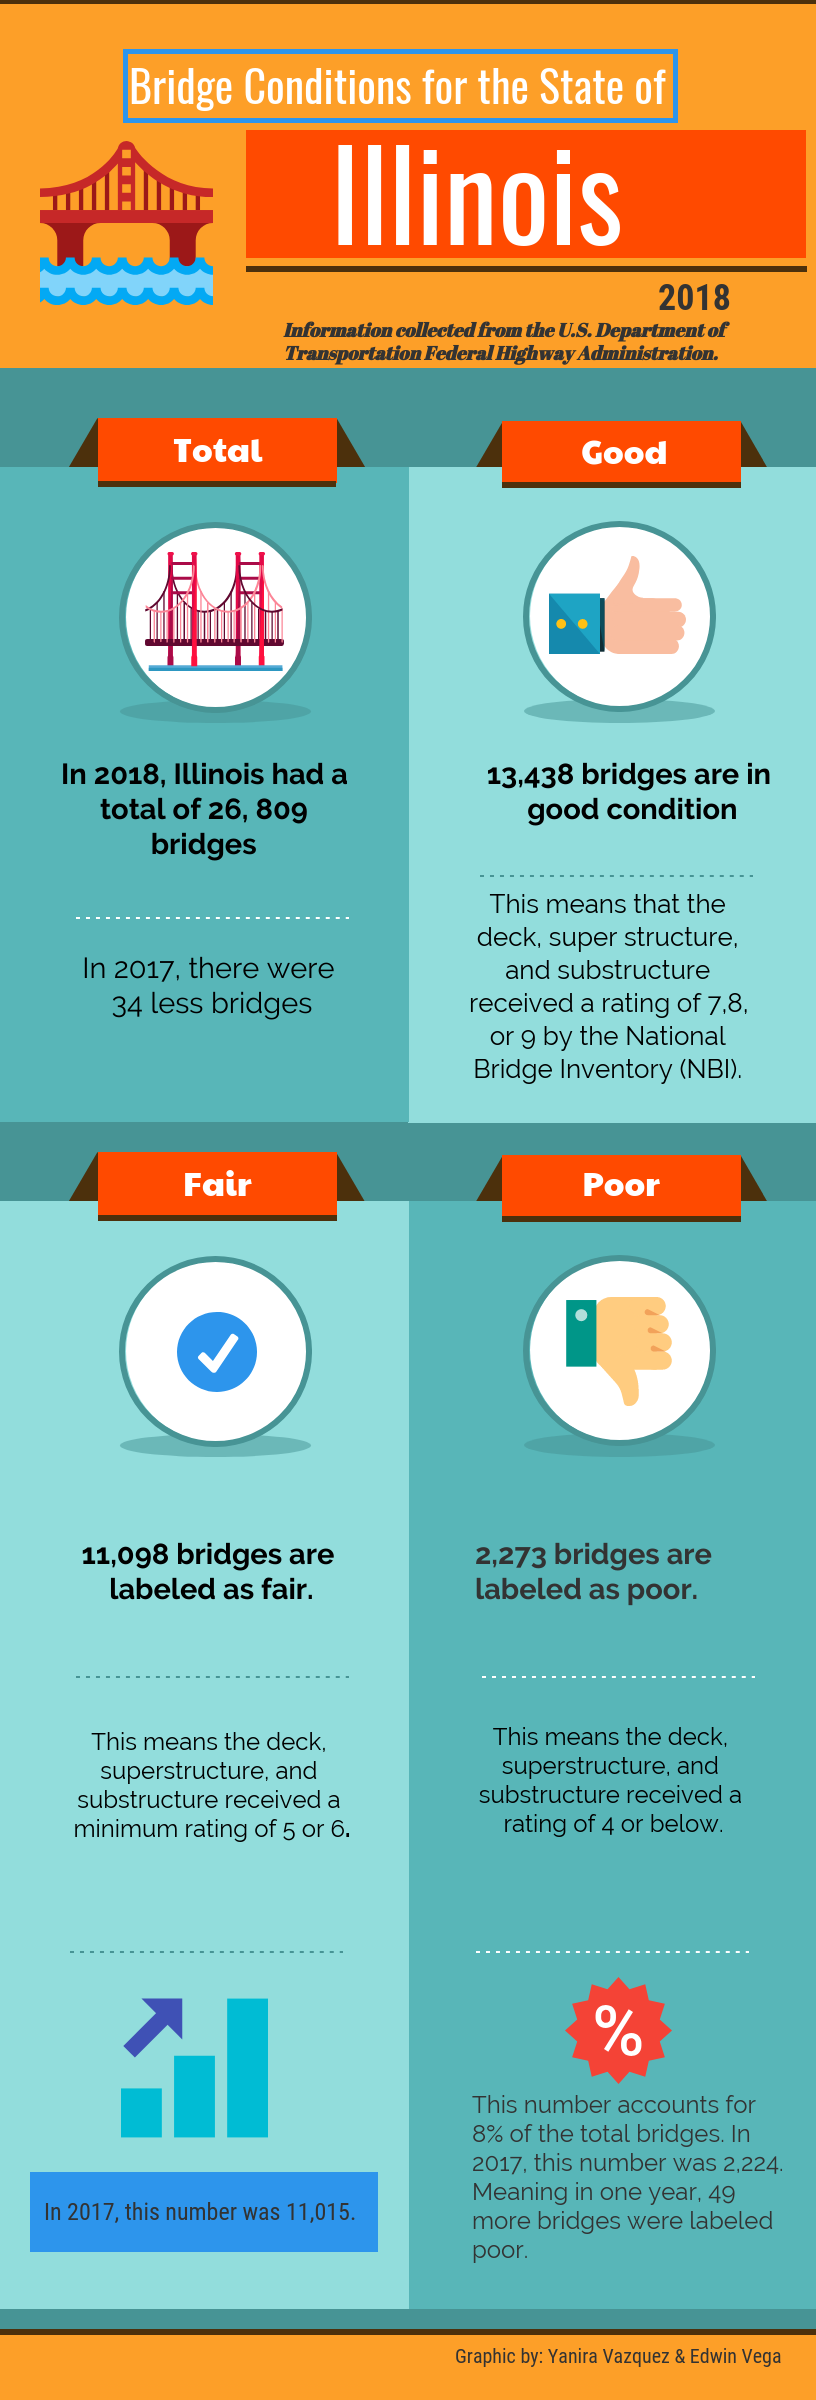 Poor Bridges, Possible Solutions for Chicago?